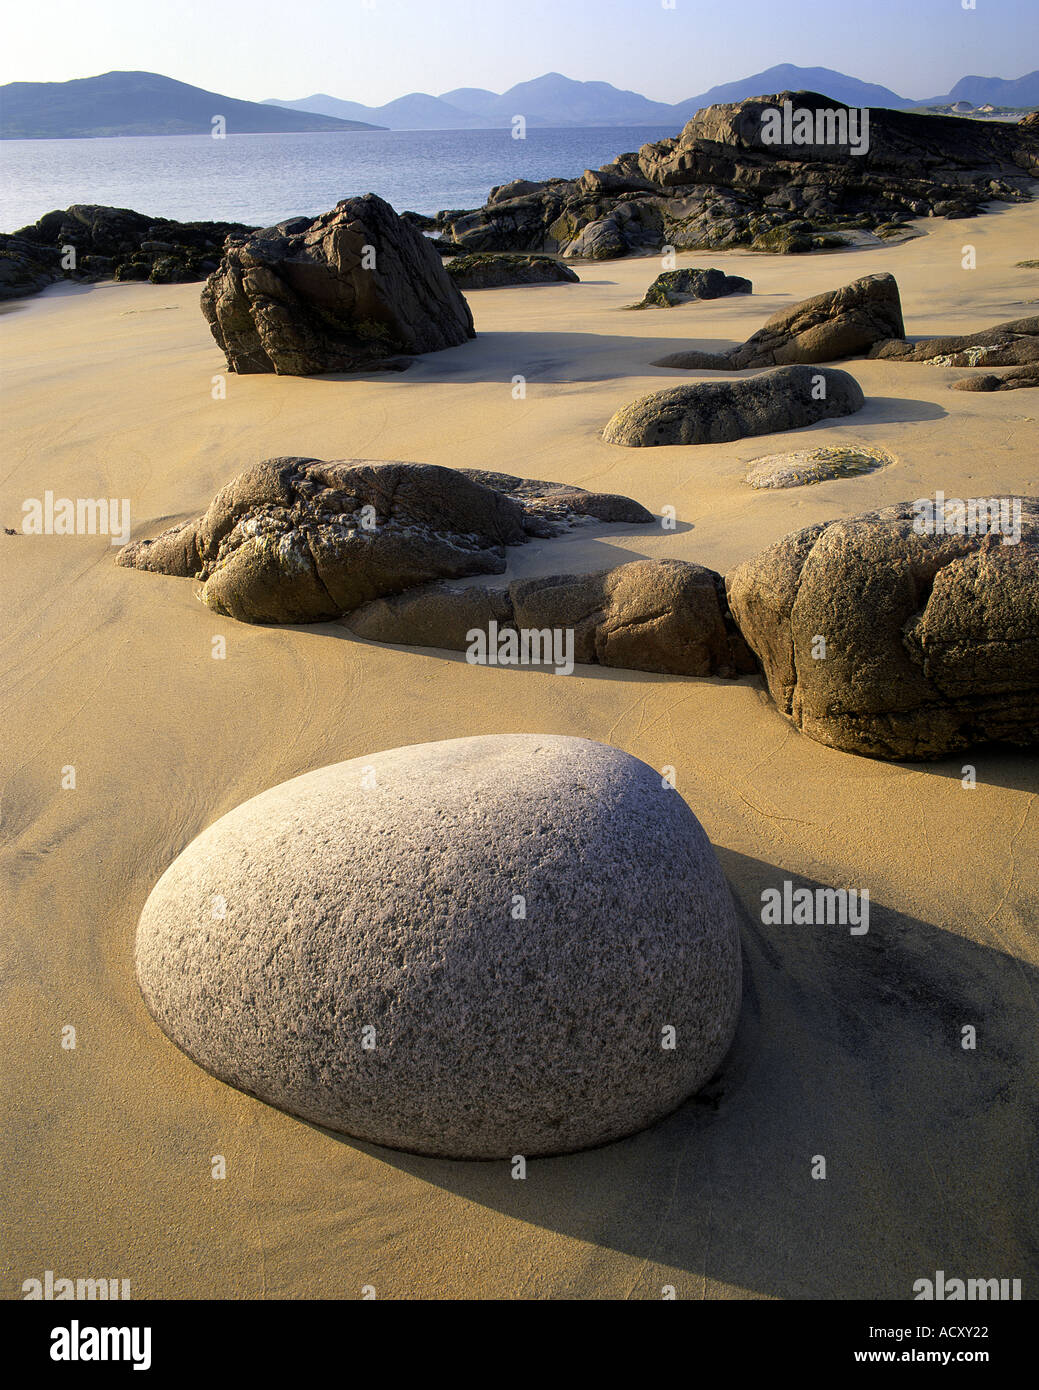 GB -  SCOTLAND: Luskentyre Sands at Seilebost on the Isle of Harris in the Outer Hebrides - Stock Image